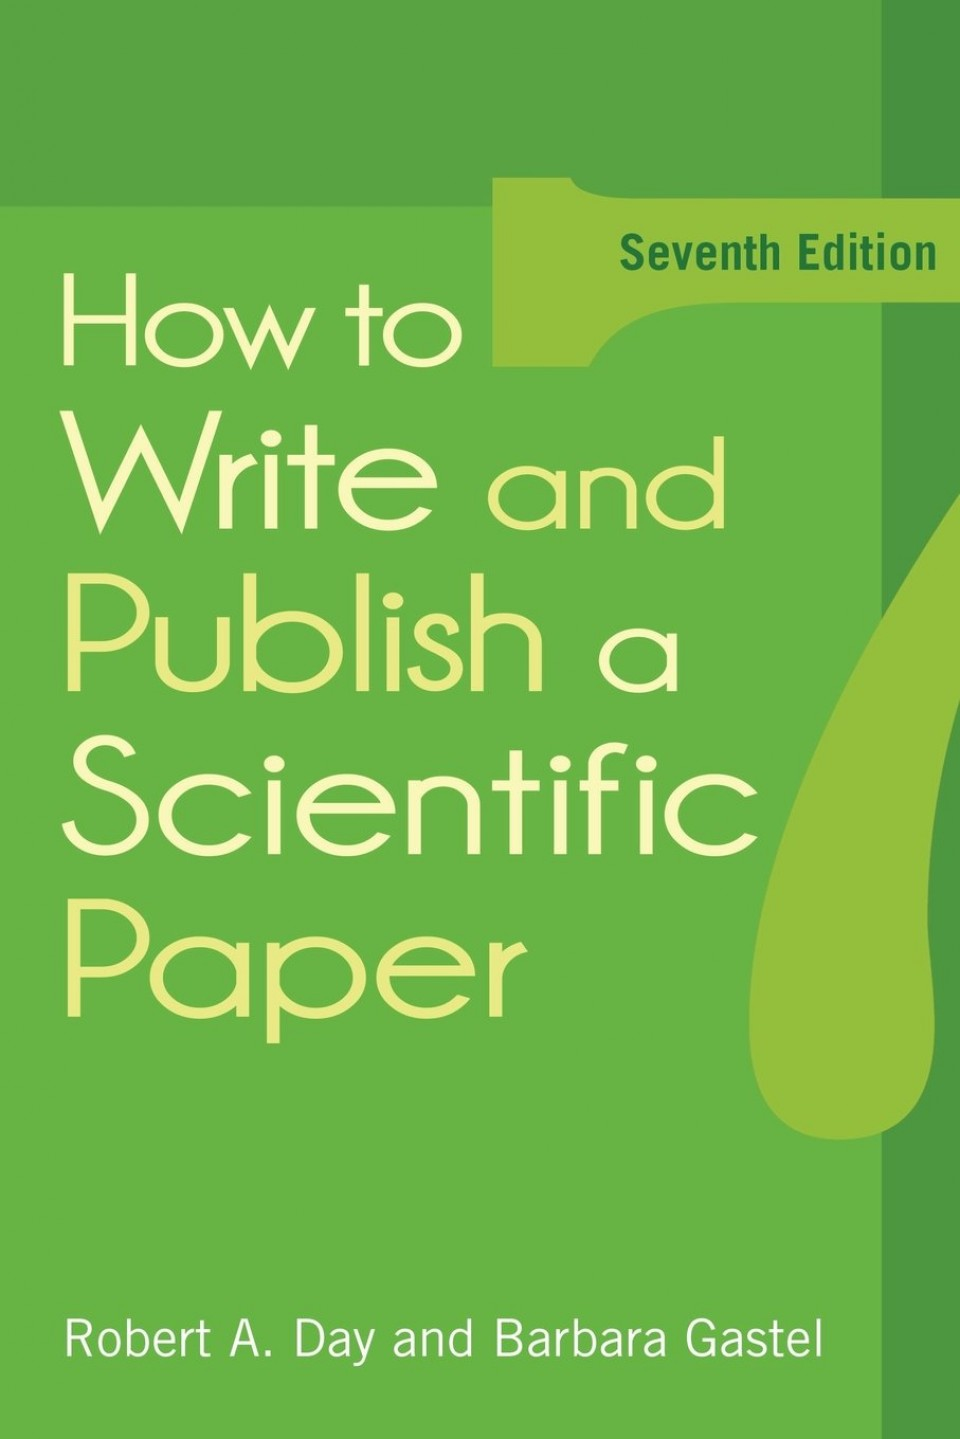 002 Research Paper How To Write Scientific Pdf Writing Sensational And Publish A Computer Science 960